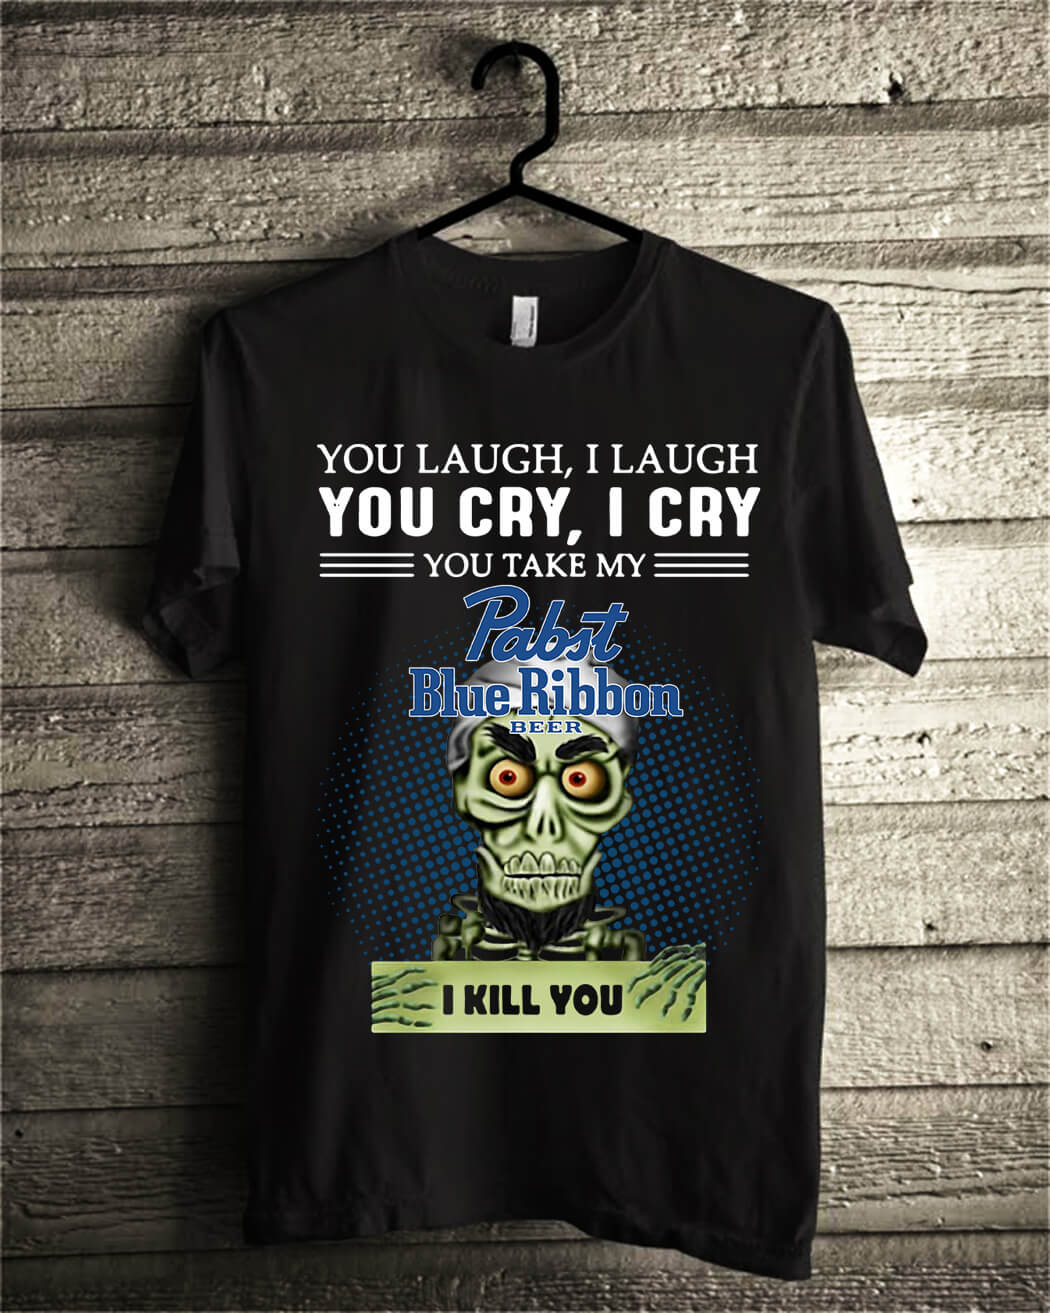 You laugh I laugh you cry I cry you take my Pabst Blue Ribbon beer I kill you shirt